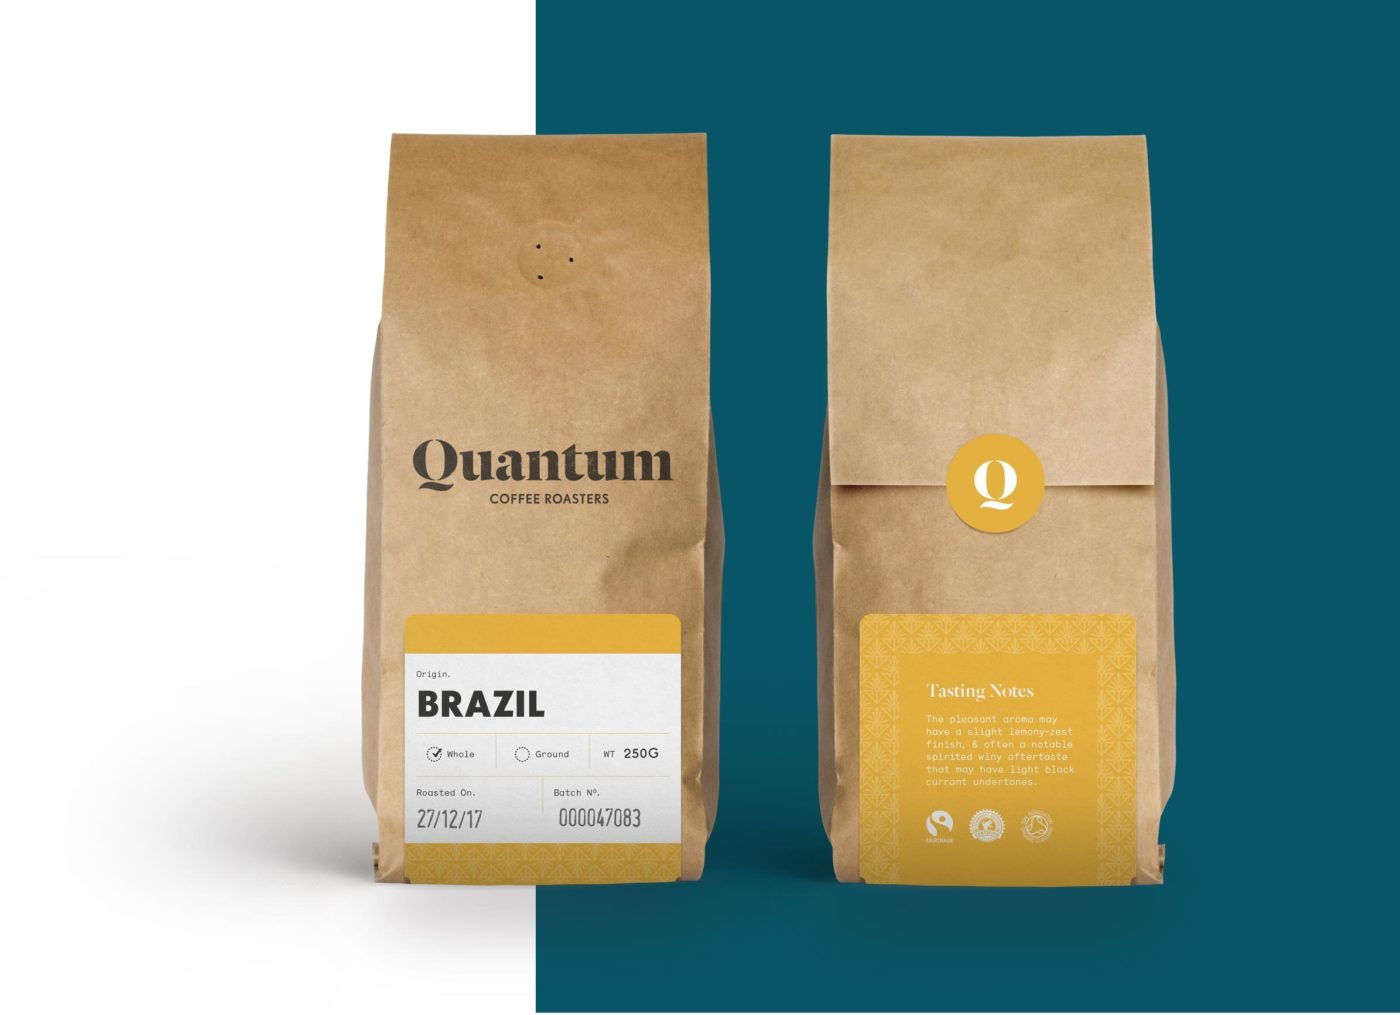 Example of new Quantum coffee roasters packaging